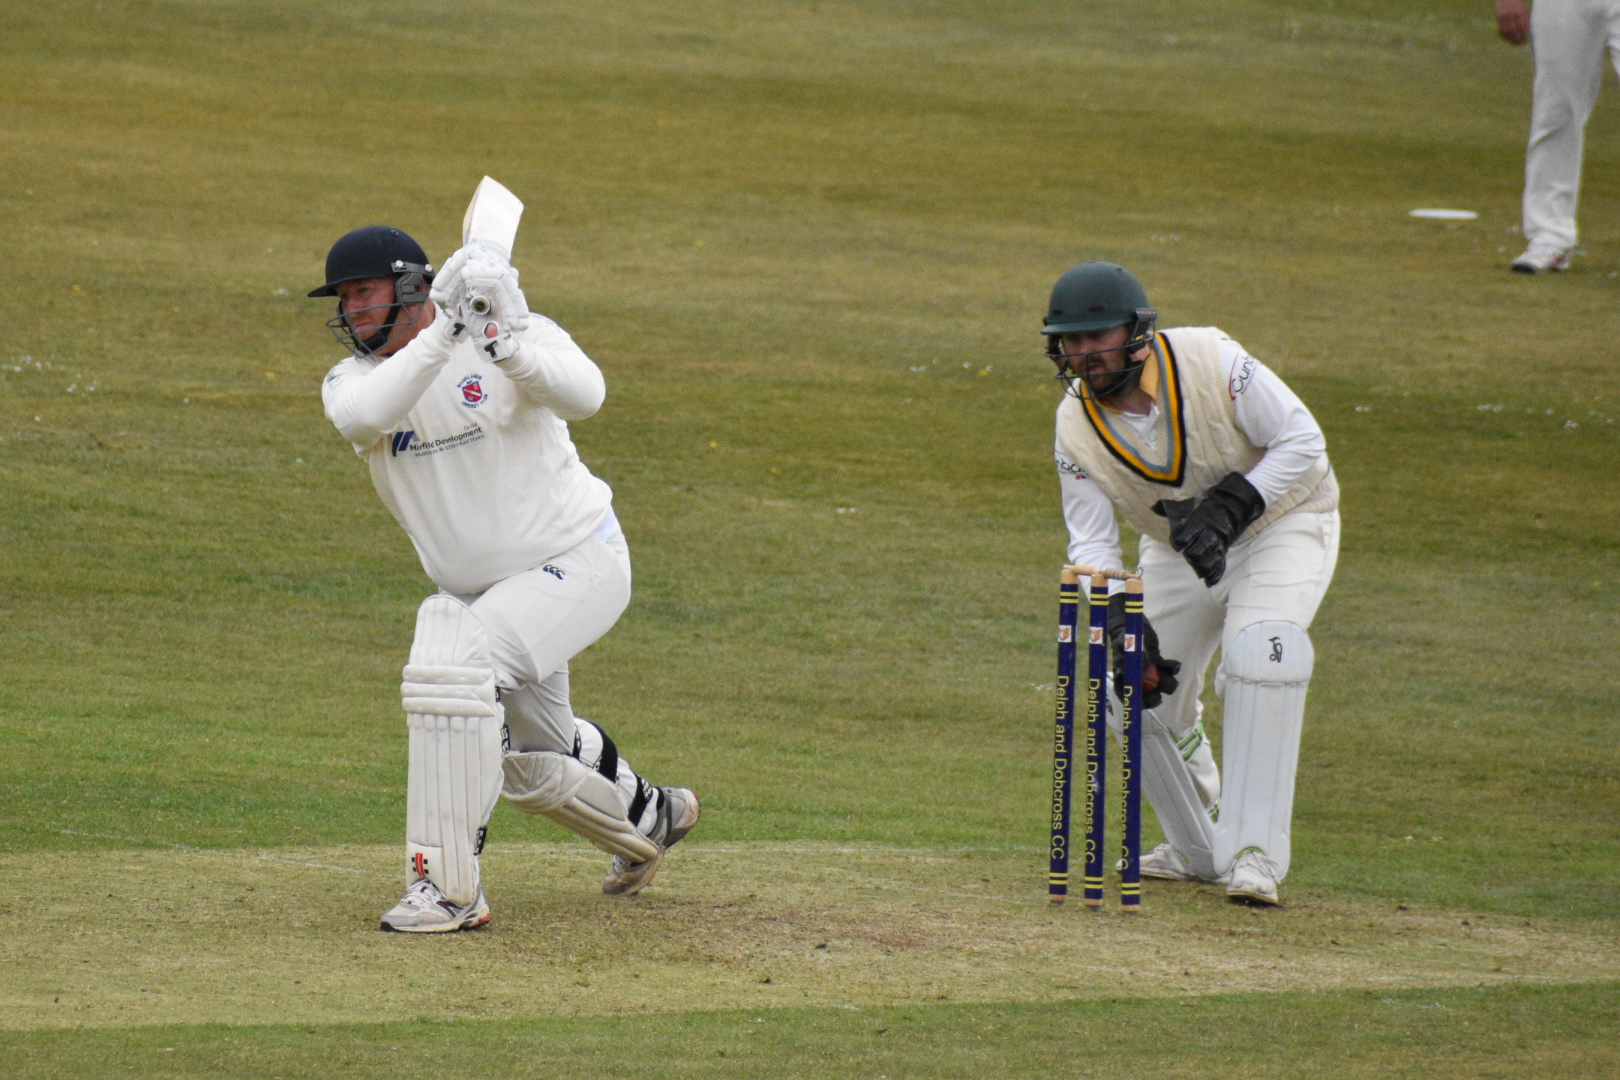 Moorlands Make It Tasty At The Top - Premiership Day 12 Review